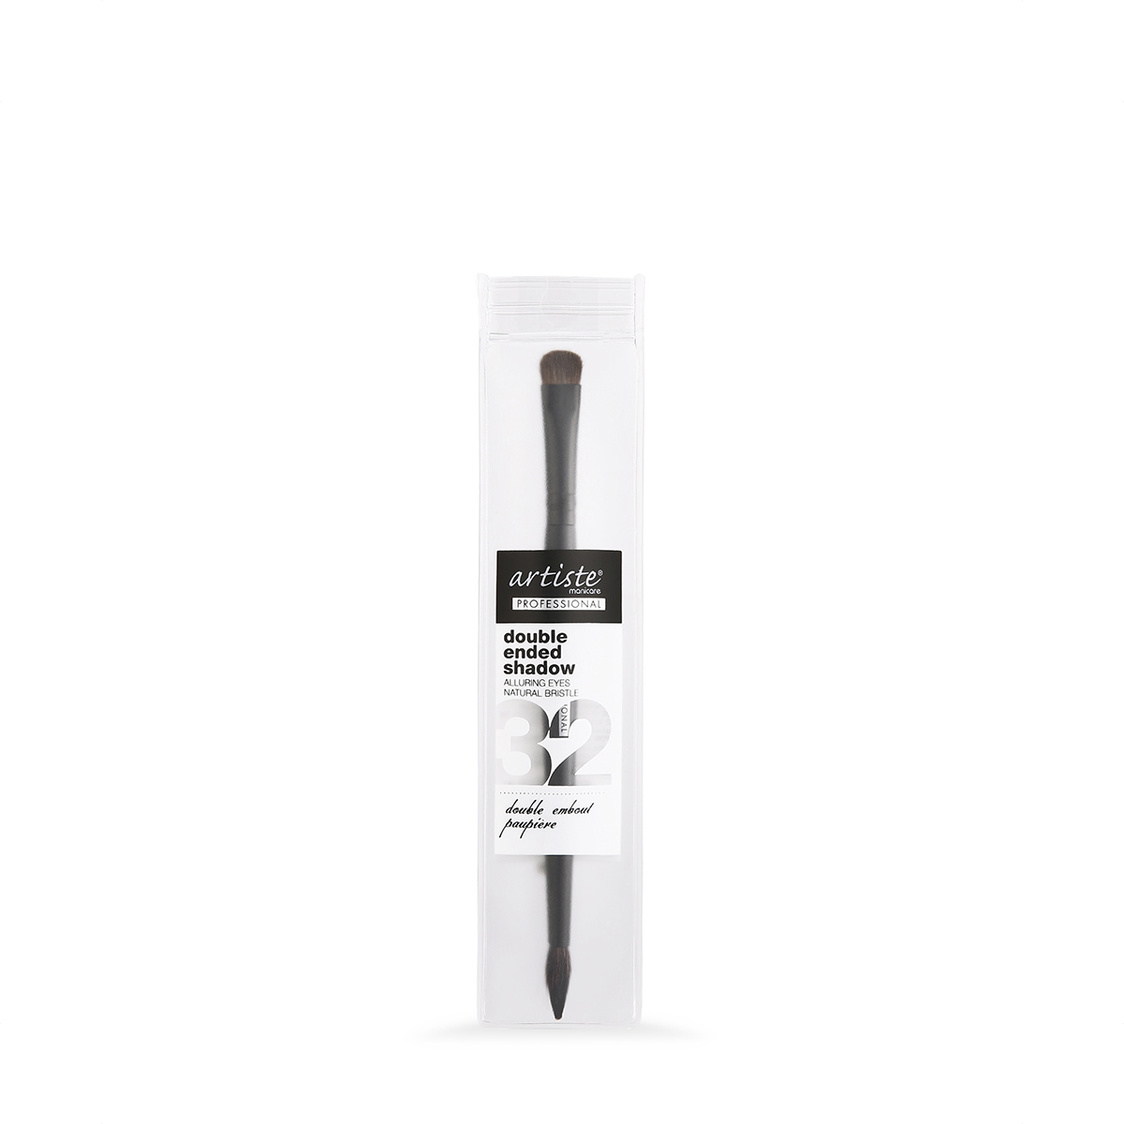 Manicare Artiste Double Ended Shadow  Crease 32